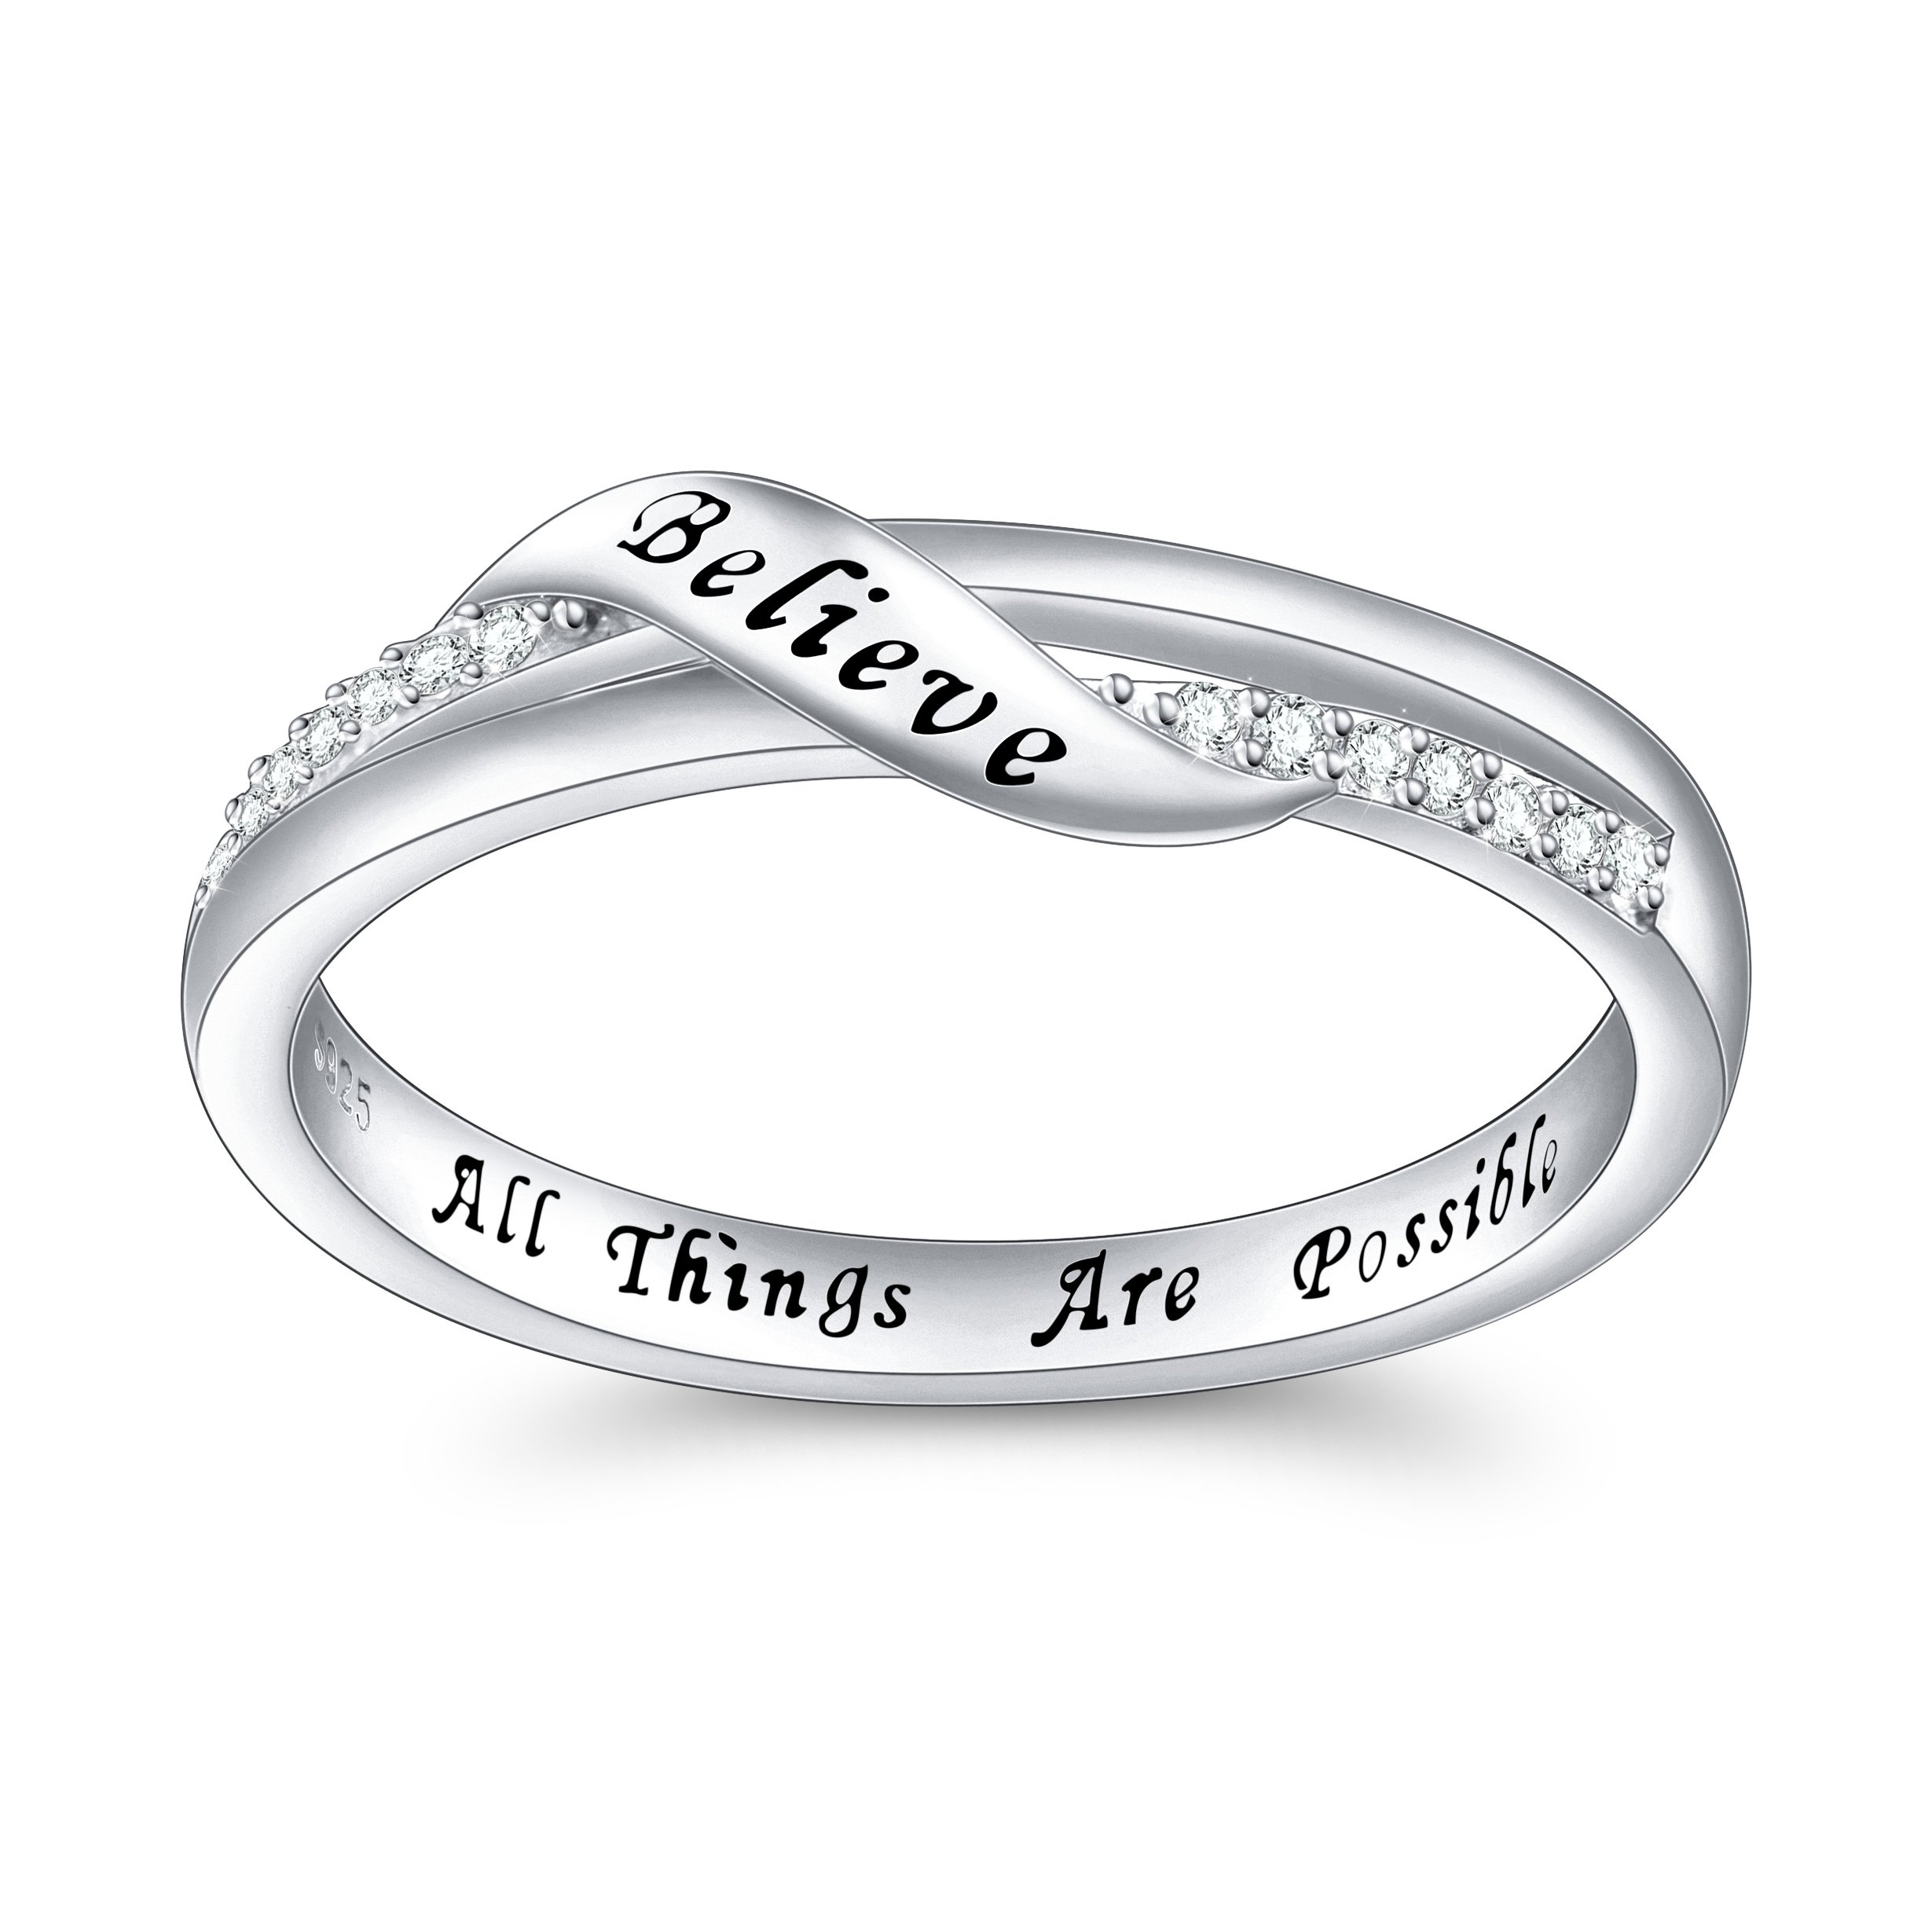 DAOCHONG Inspirational Jewelry Sterling Silver Engraved Believe All Things are Possible Band Ring for Women Girl, Size 6-8 (8) by DAOCHONG